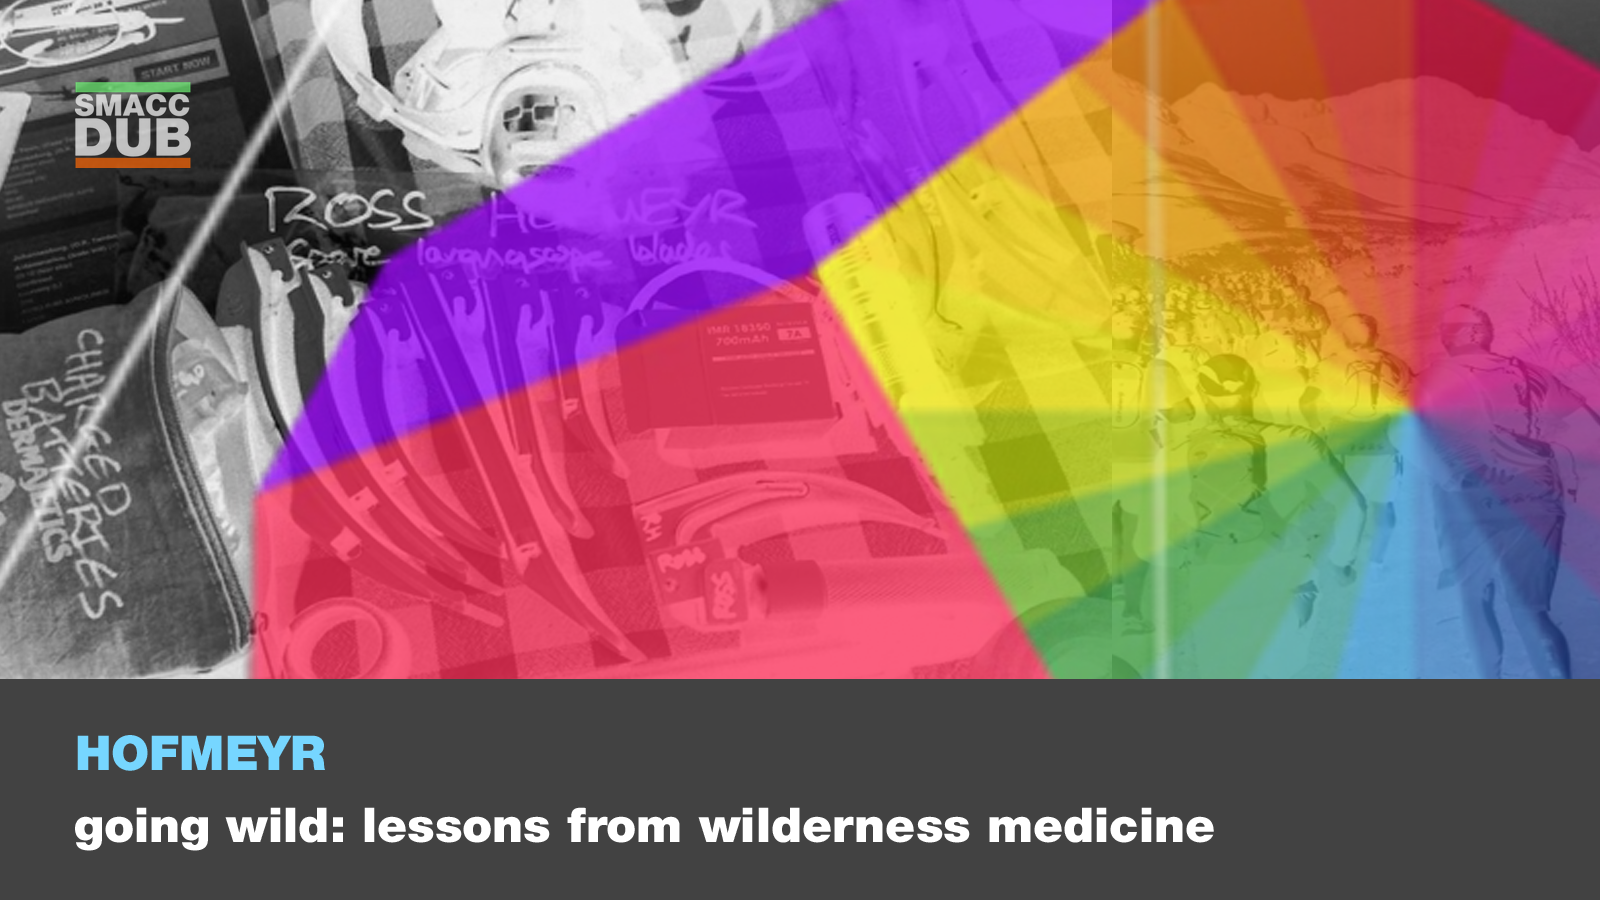 Hofmeyr - Going Wild: Lessons from Wilderness Medicine